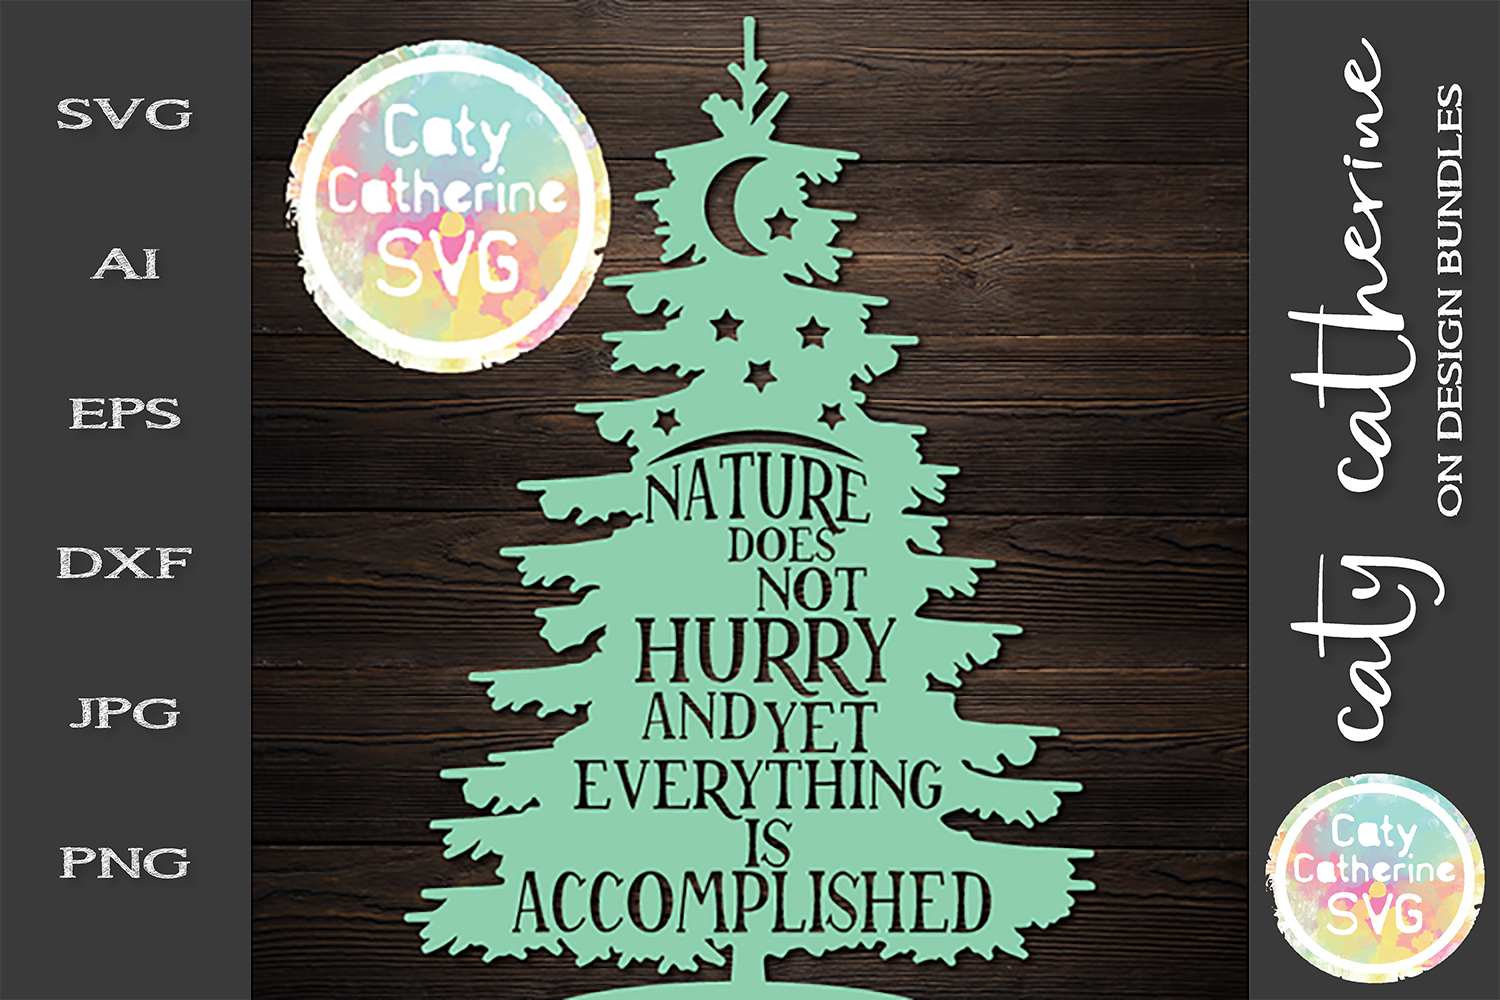 Nature Does Not Hurry And Yet Everything Is Accomplished SVG example image 1